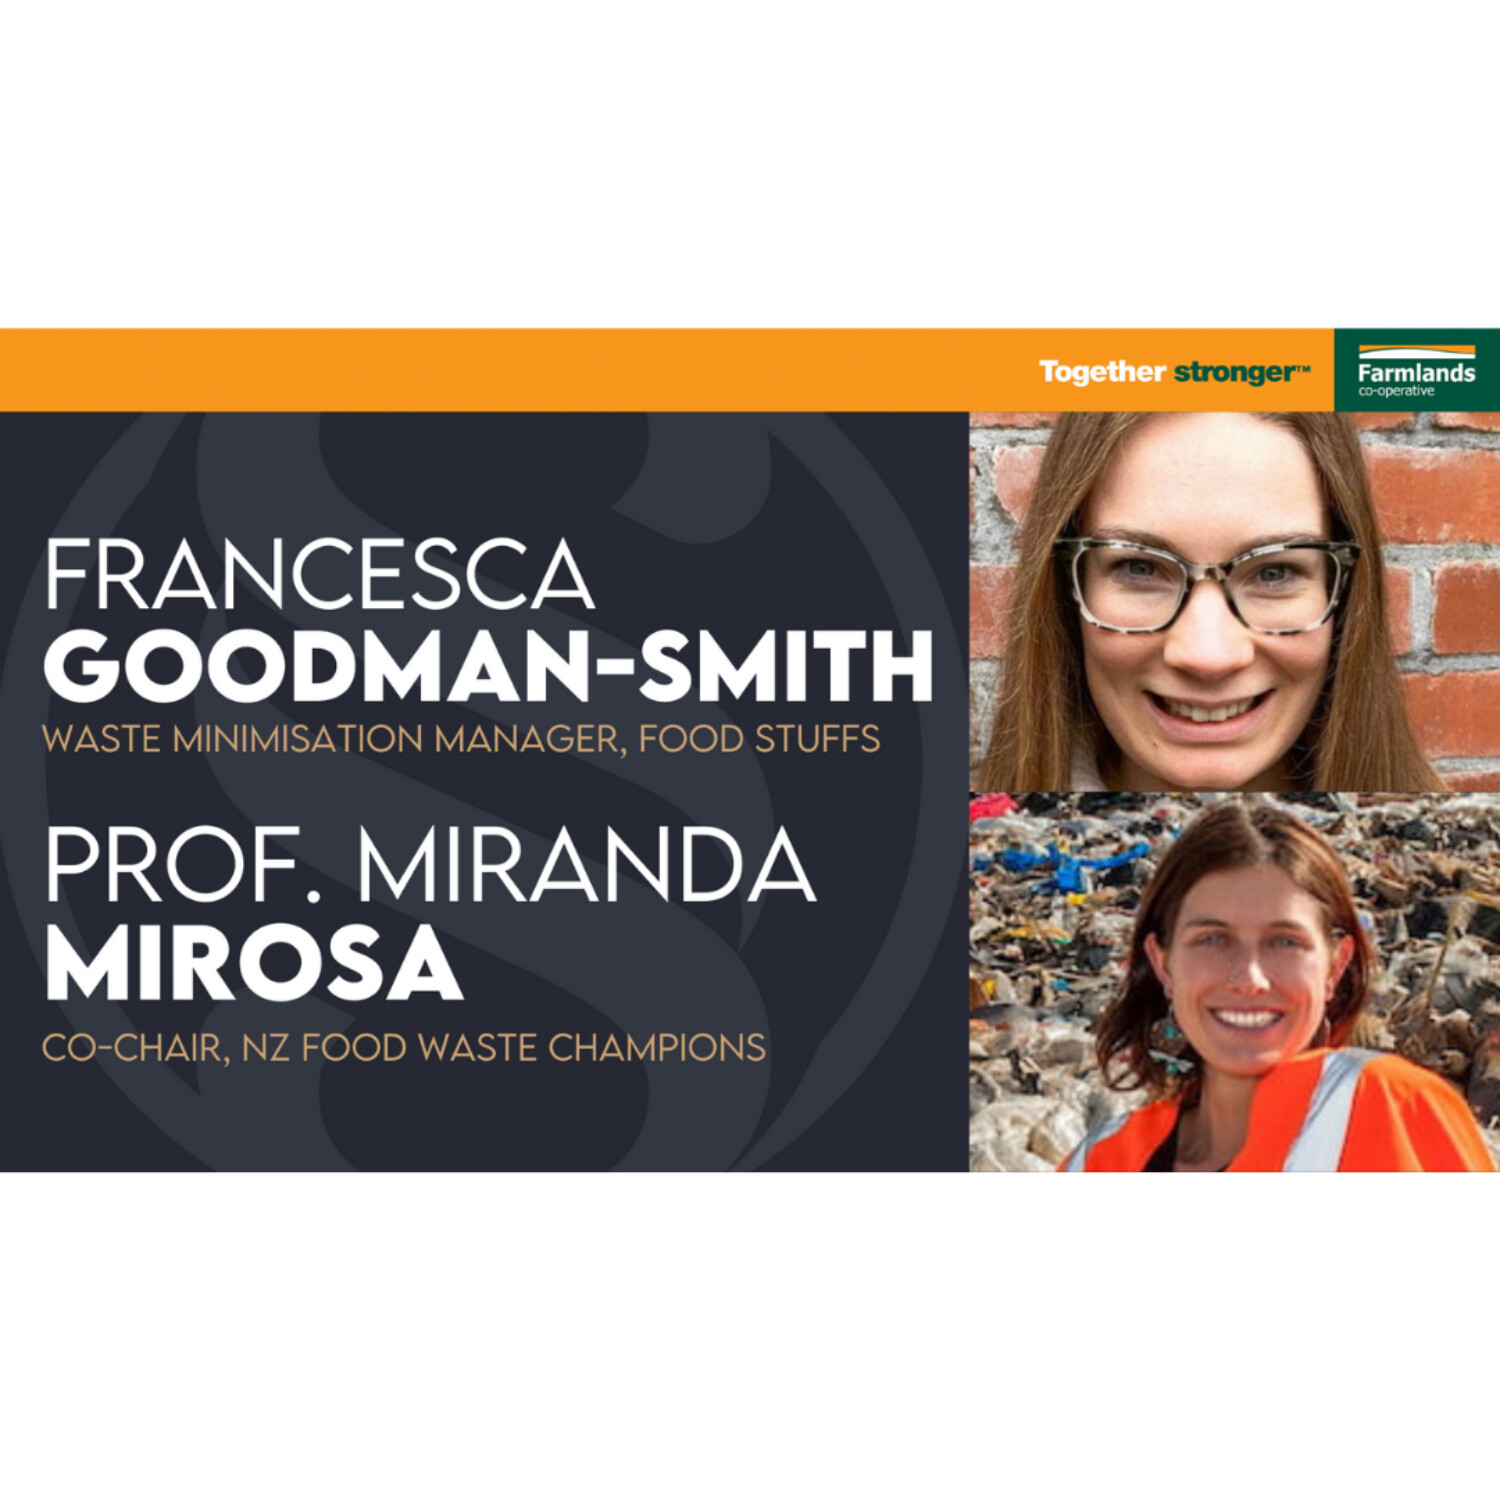 Upcycling food | Francesca Goodman-Smith & Prof. Miranda Mirosa